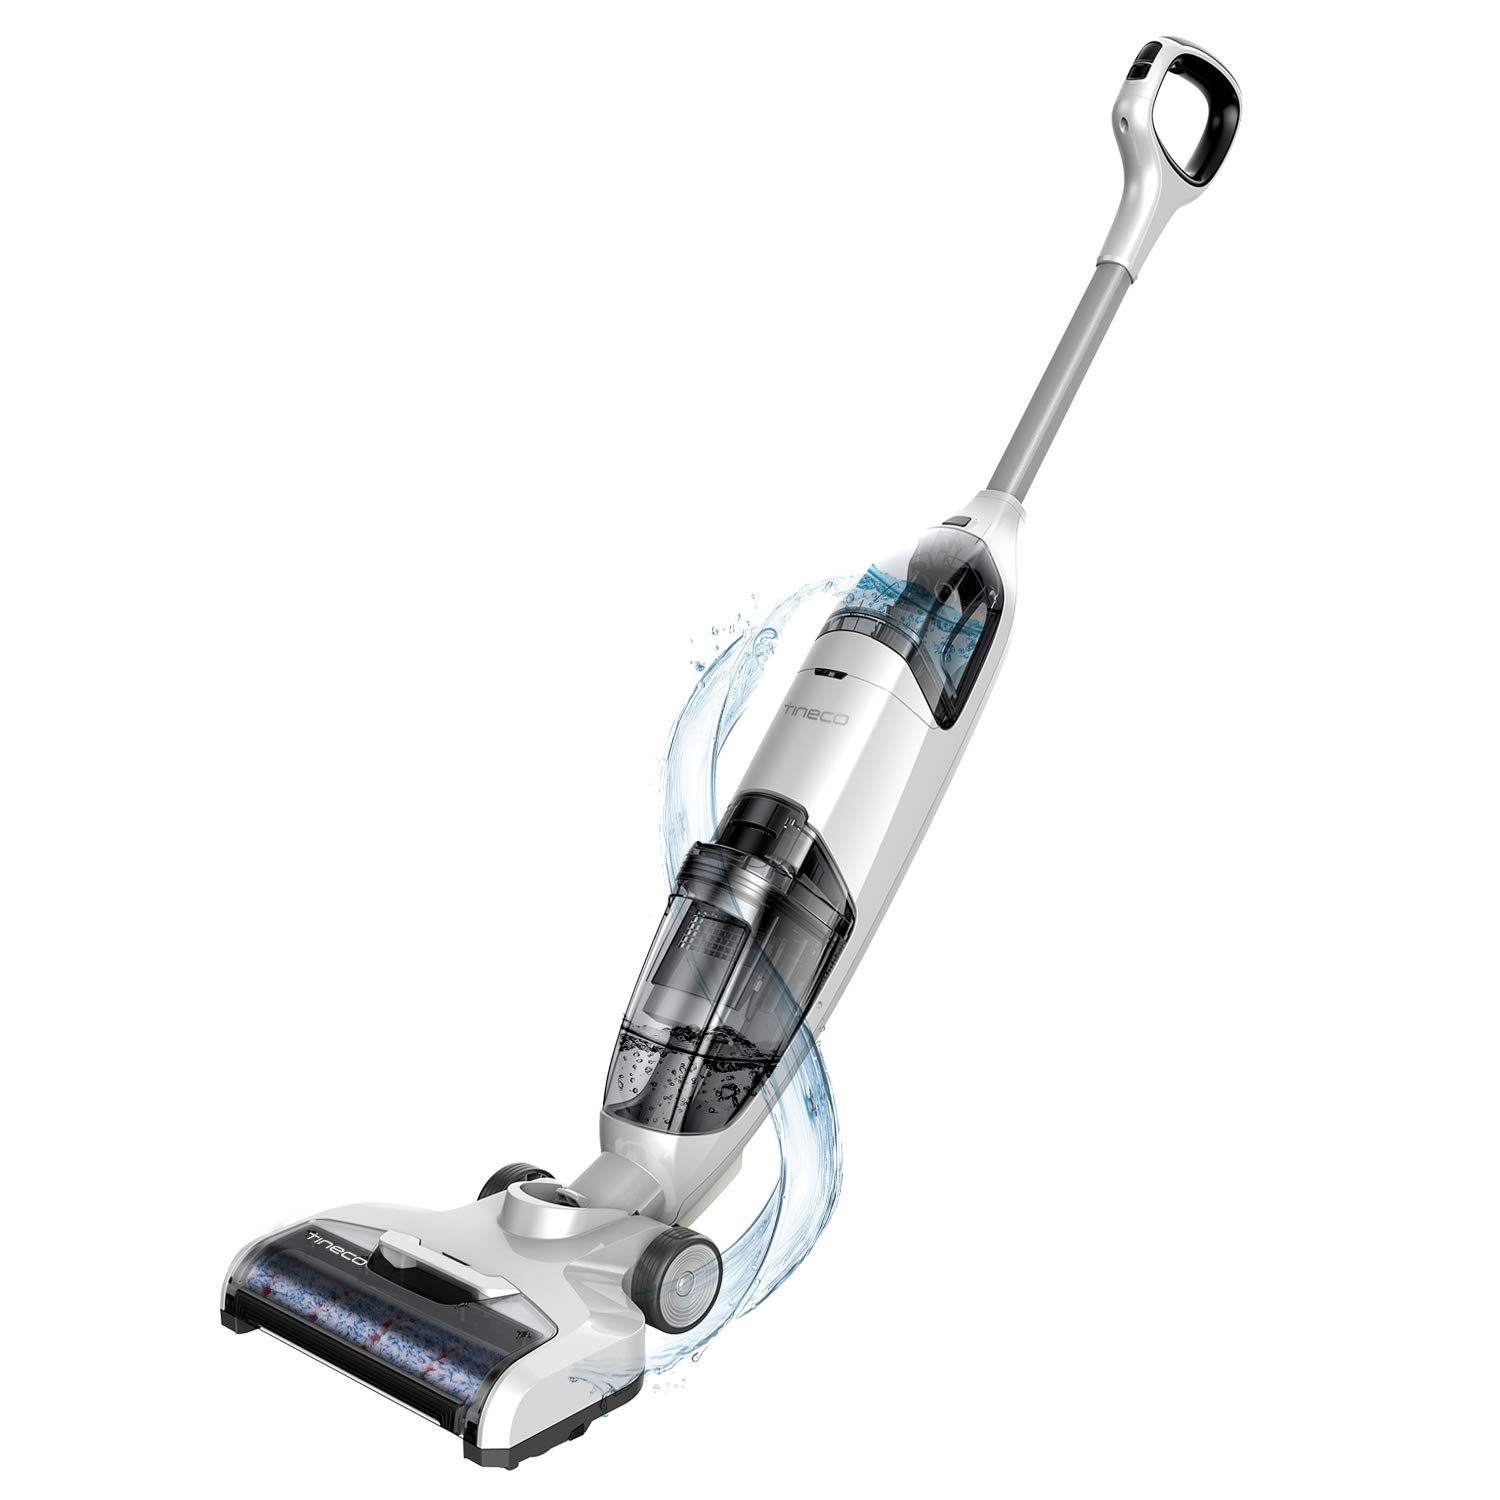 Tineco iFloor Cordless Wet Dry Vacuum Cleaner Powerful and Lightweight Hard Floor Washer with Self-Cleaning Brush by Tineco (Image #1)